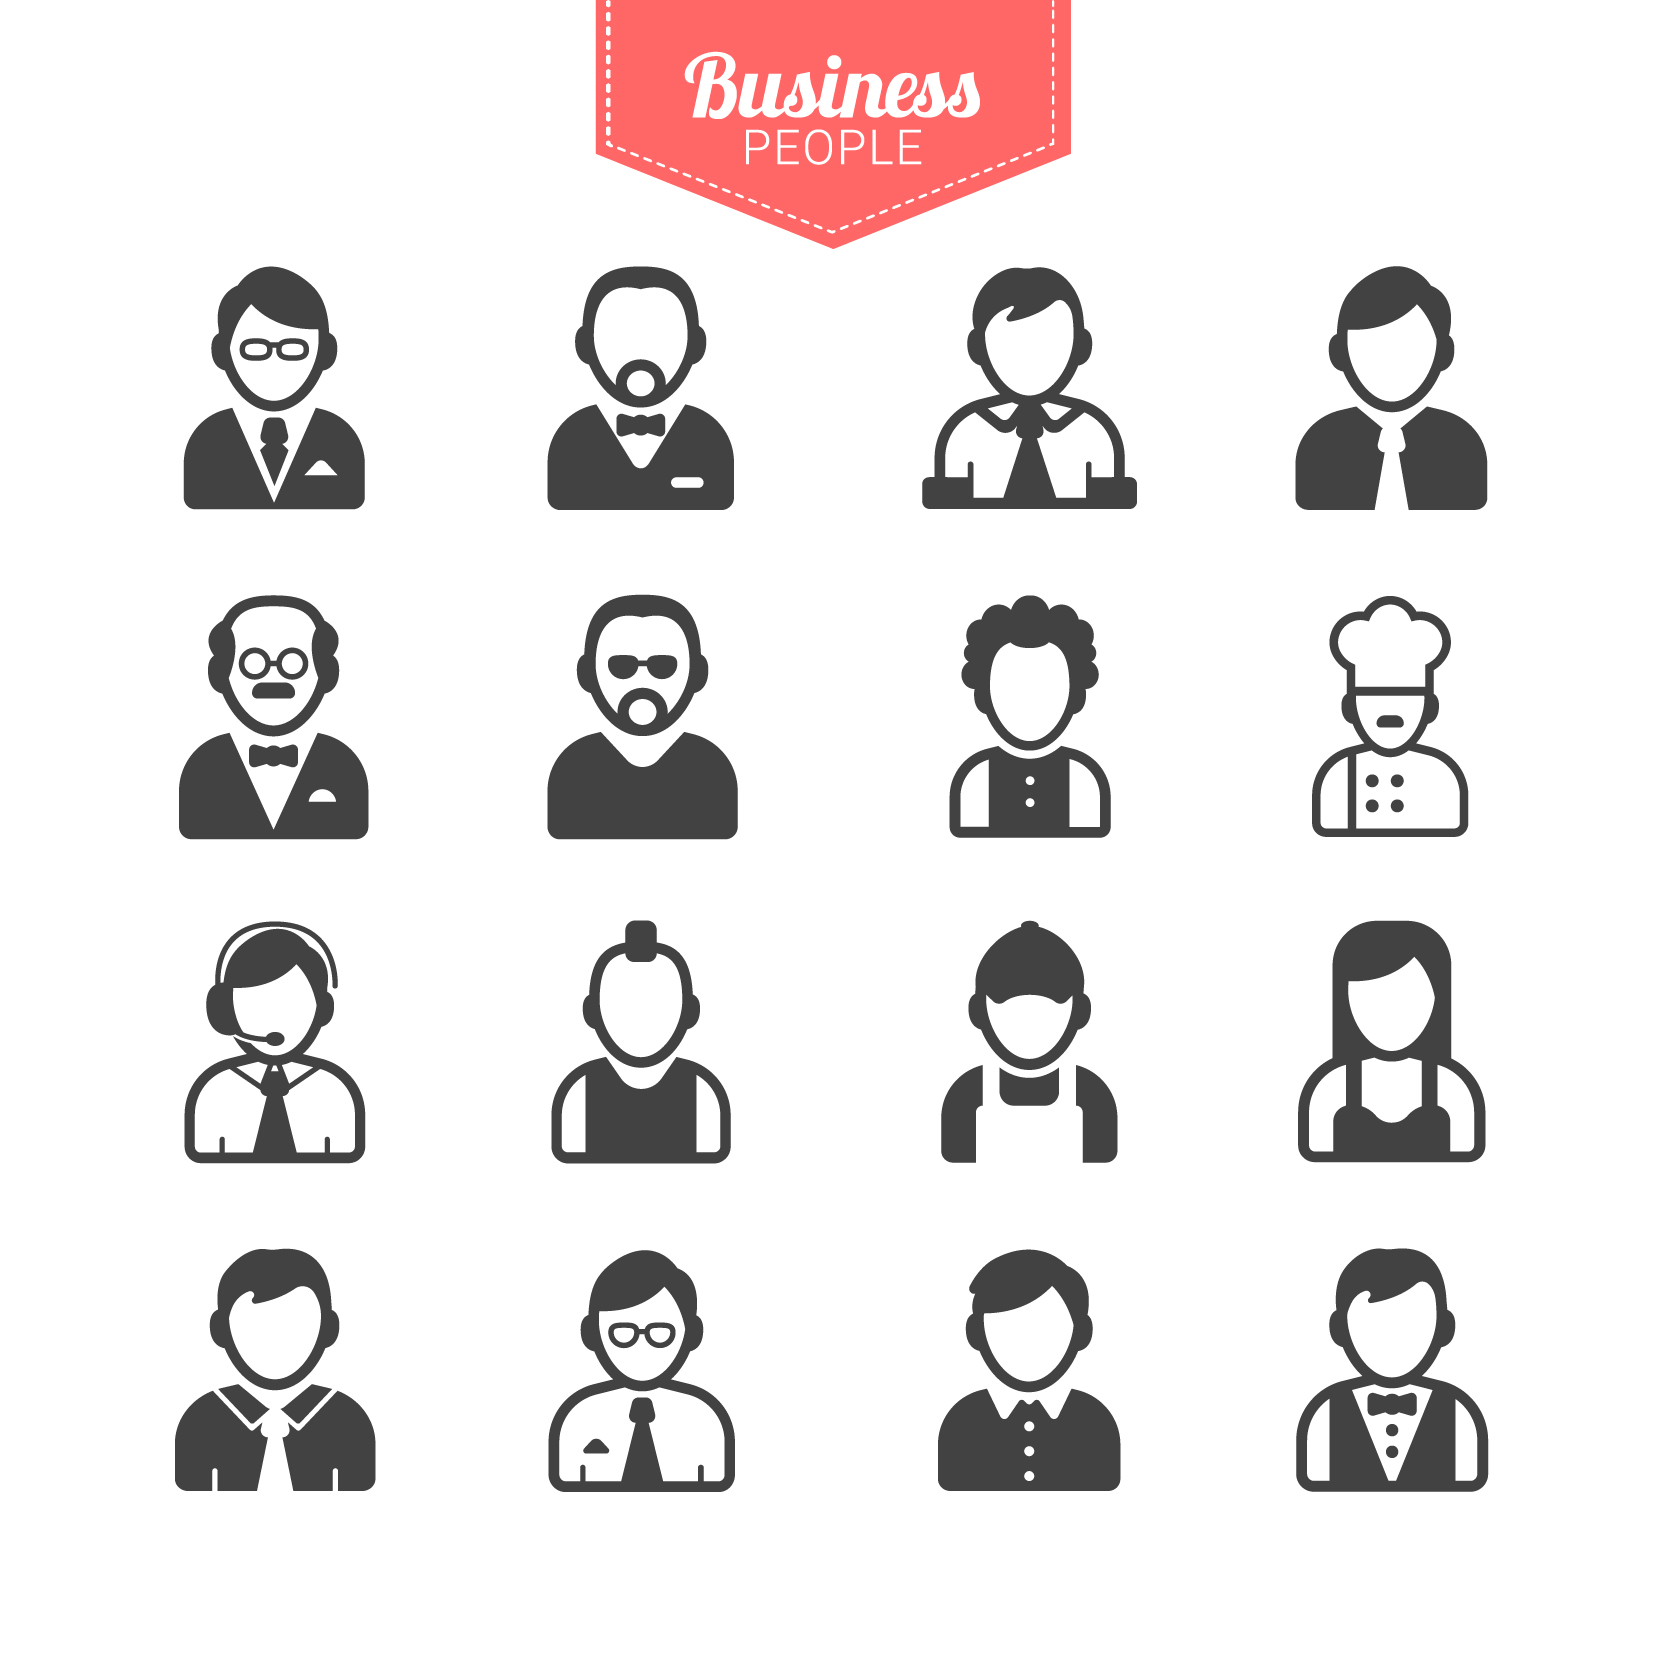 BusinessPeople-01